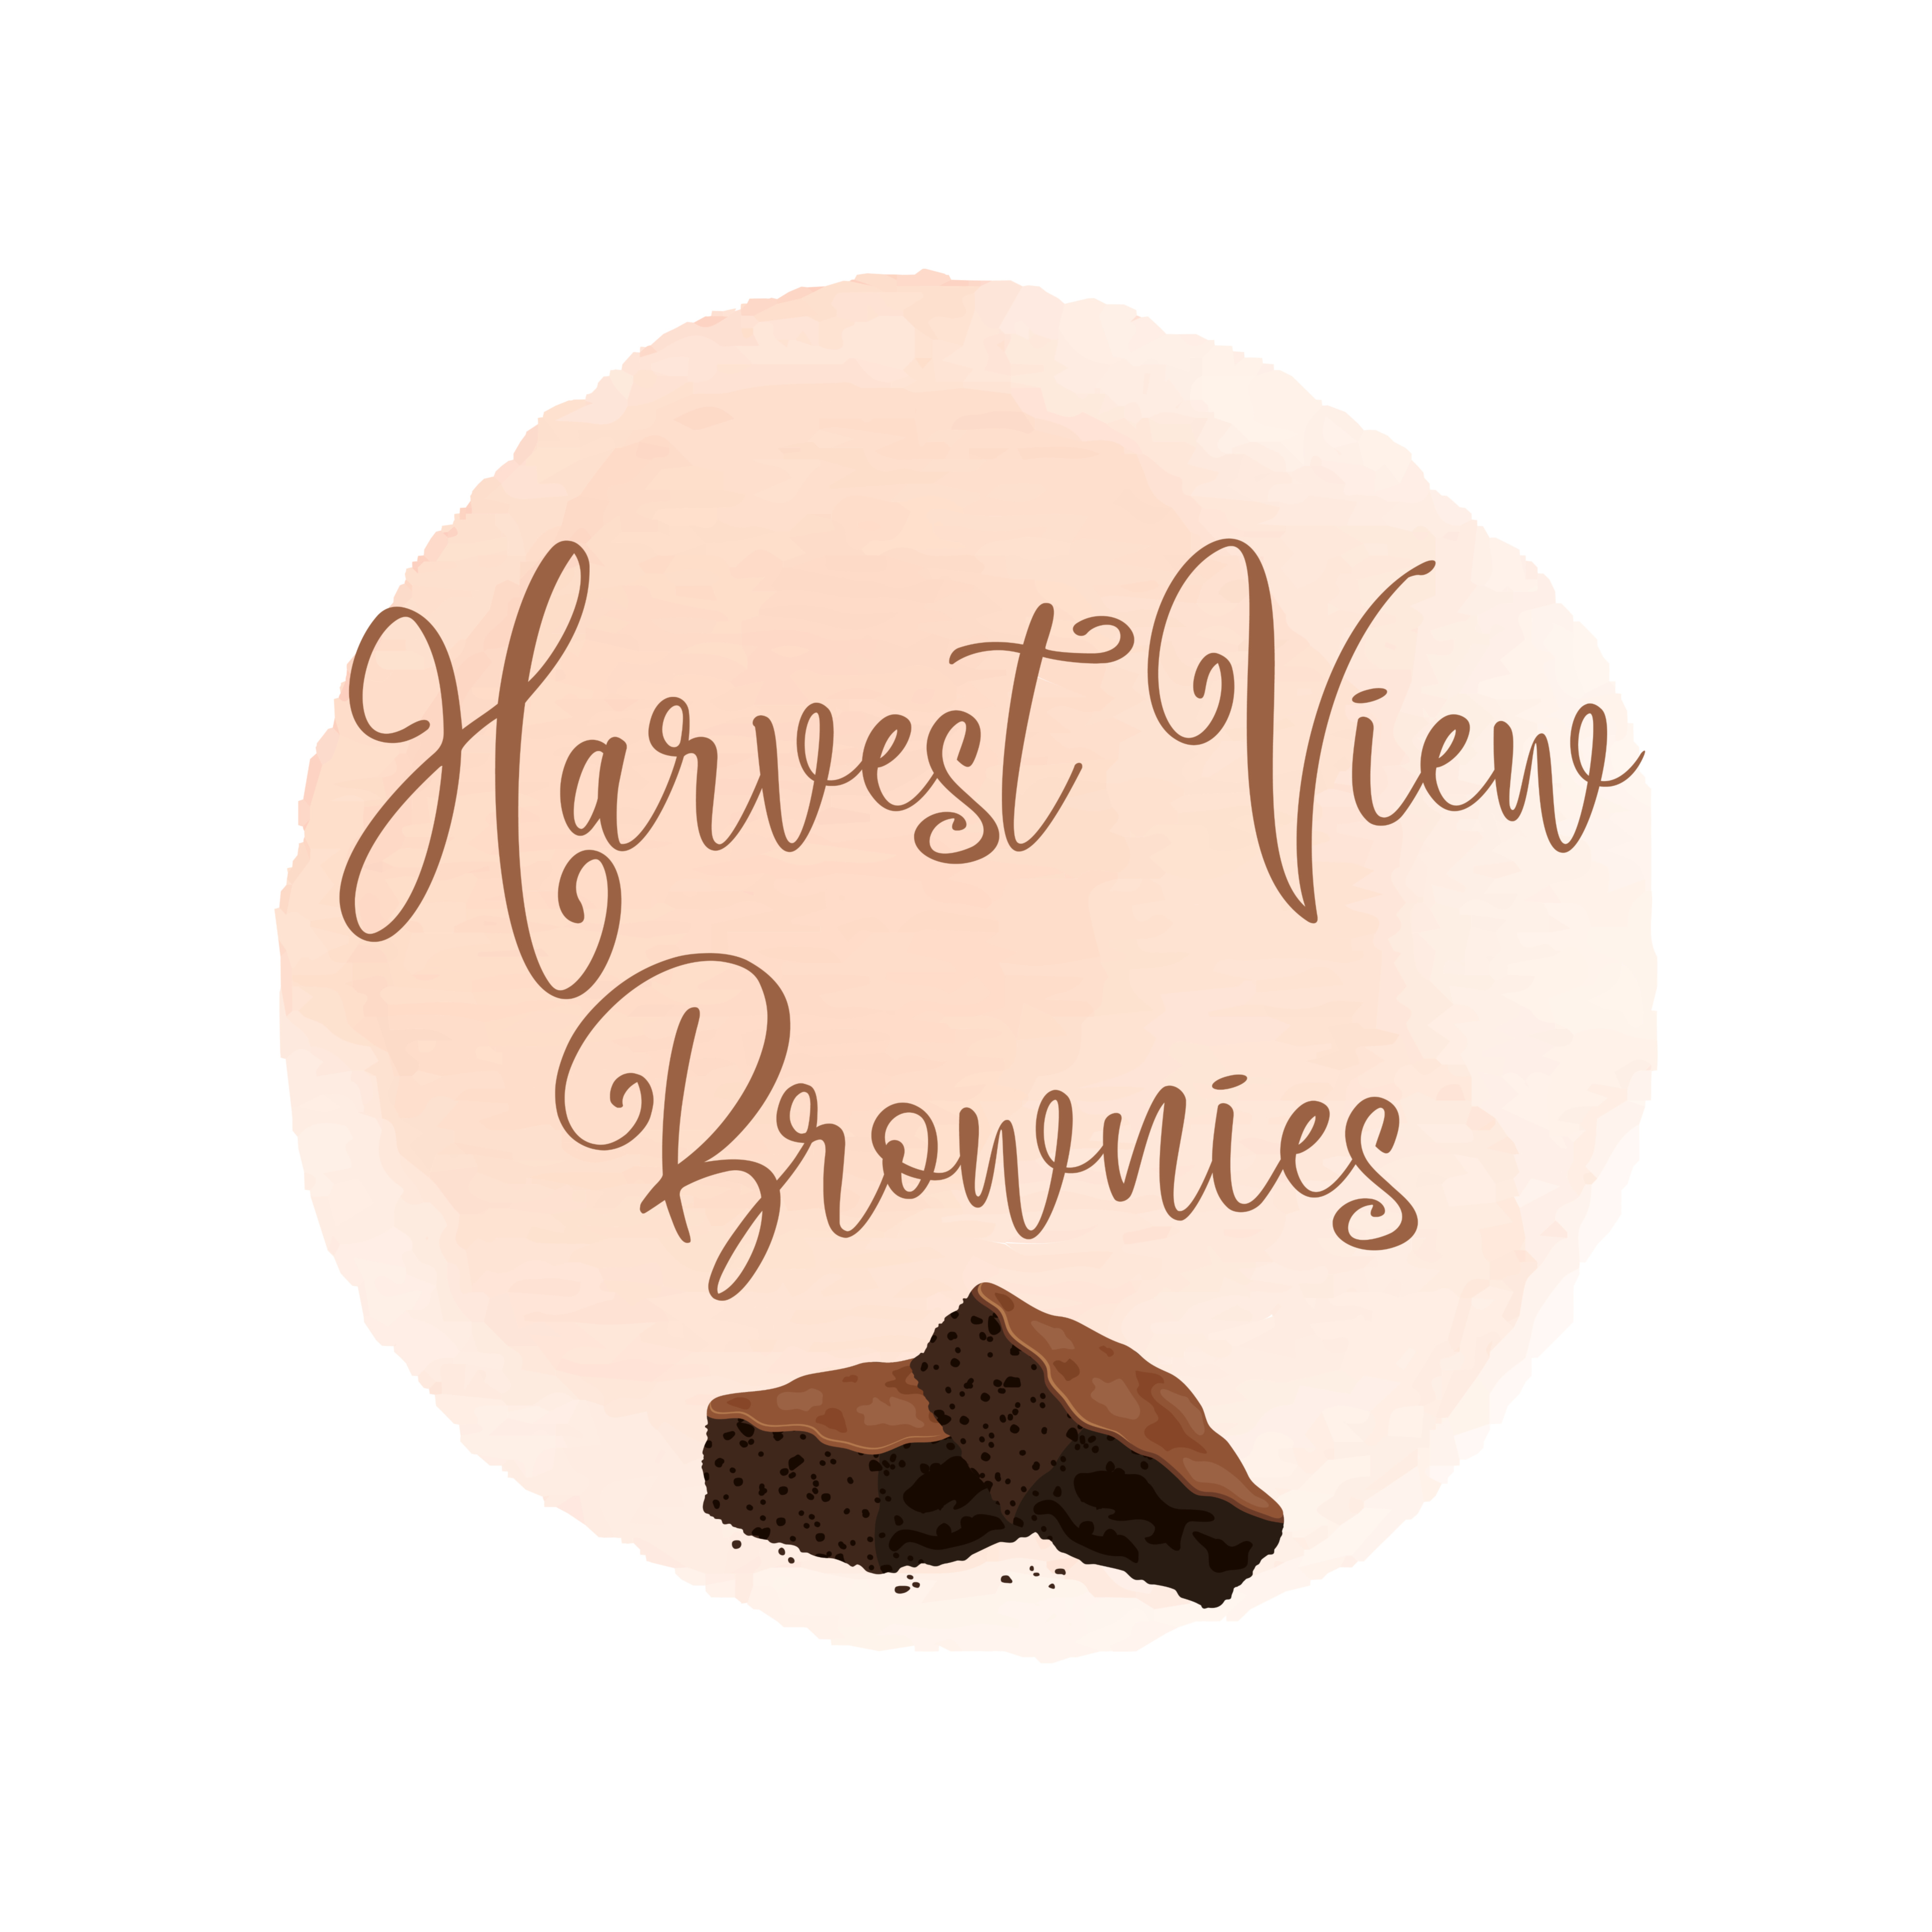 Whirlwind start for Harvest View Brownies